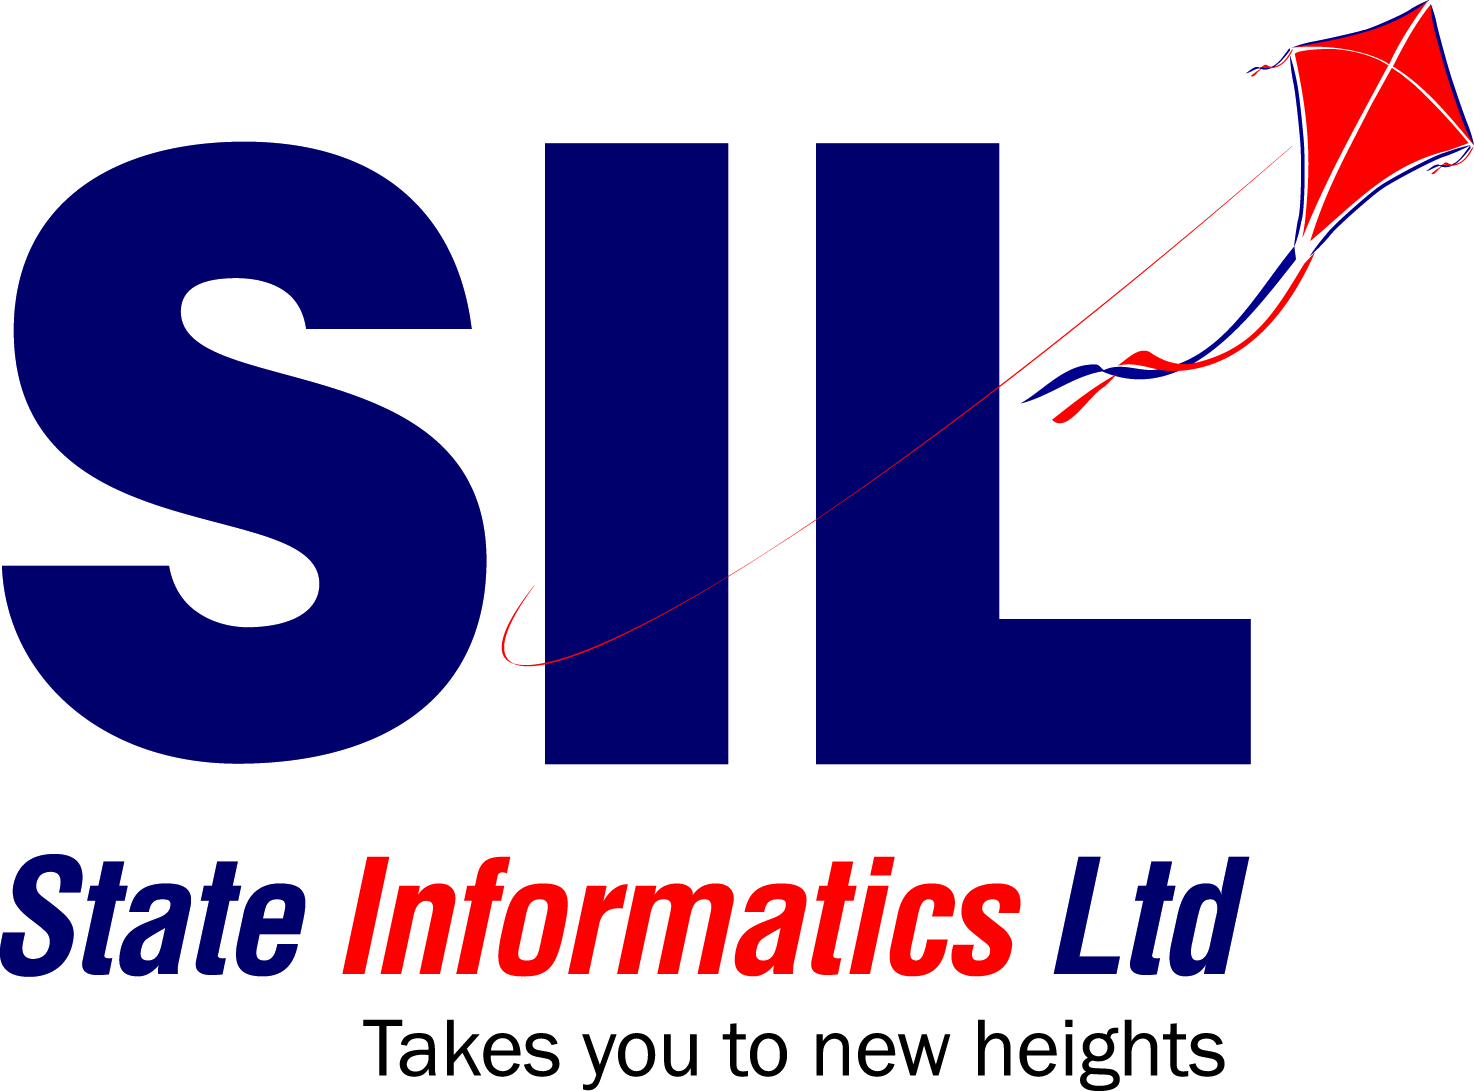 State Informatics Ltd.(SIL)